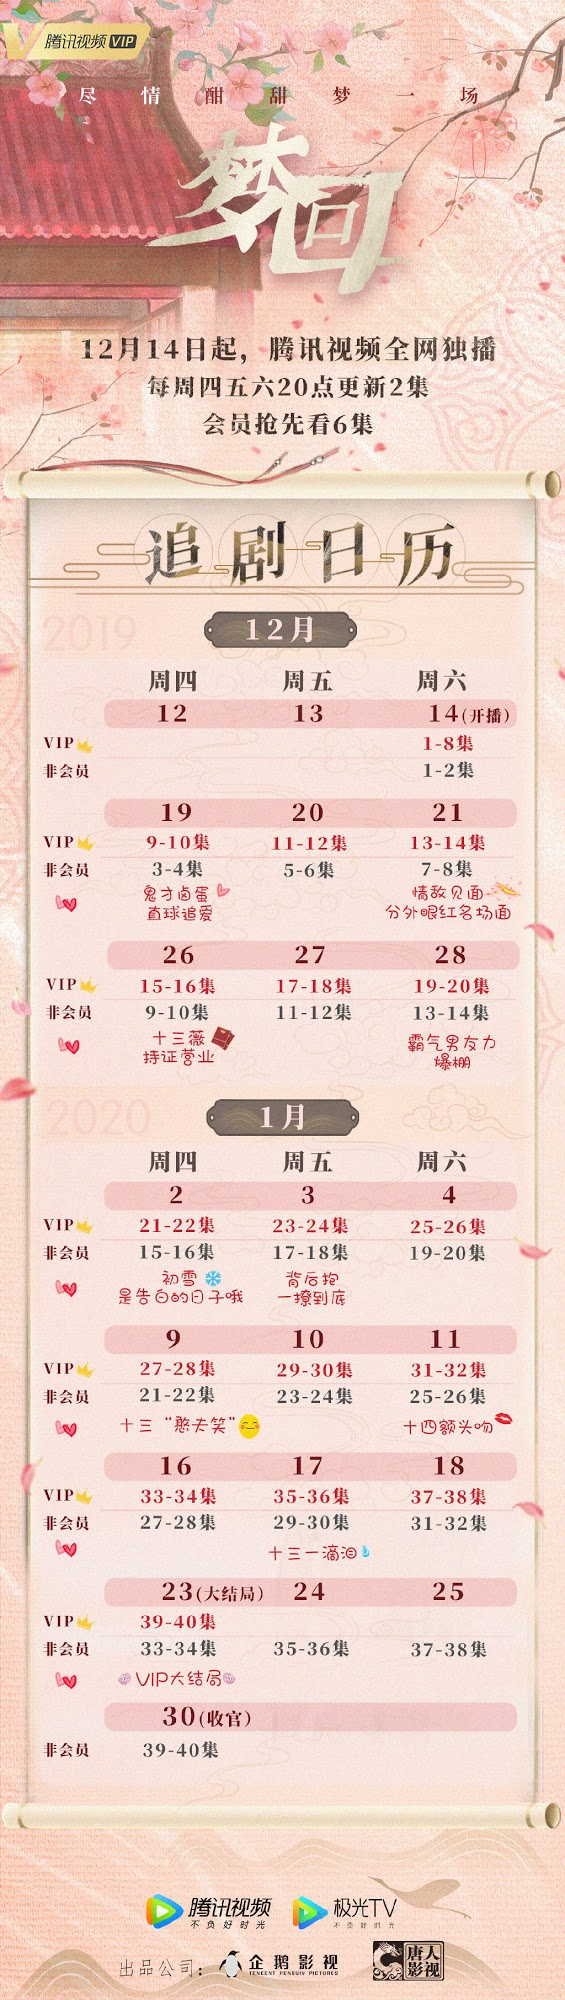 Web Drama: Dreaming Back To The Qing Dynasty  Chinesedrama for Dreaming Of A Calendar Date